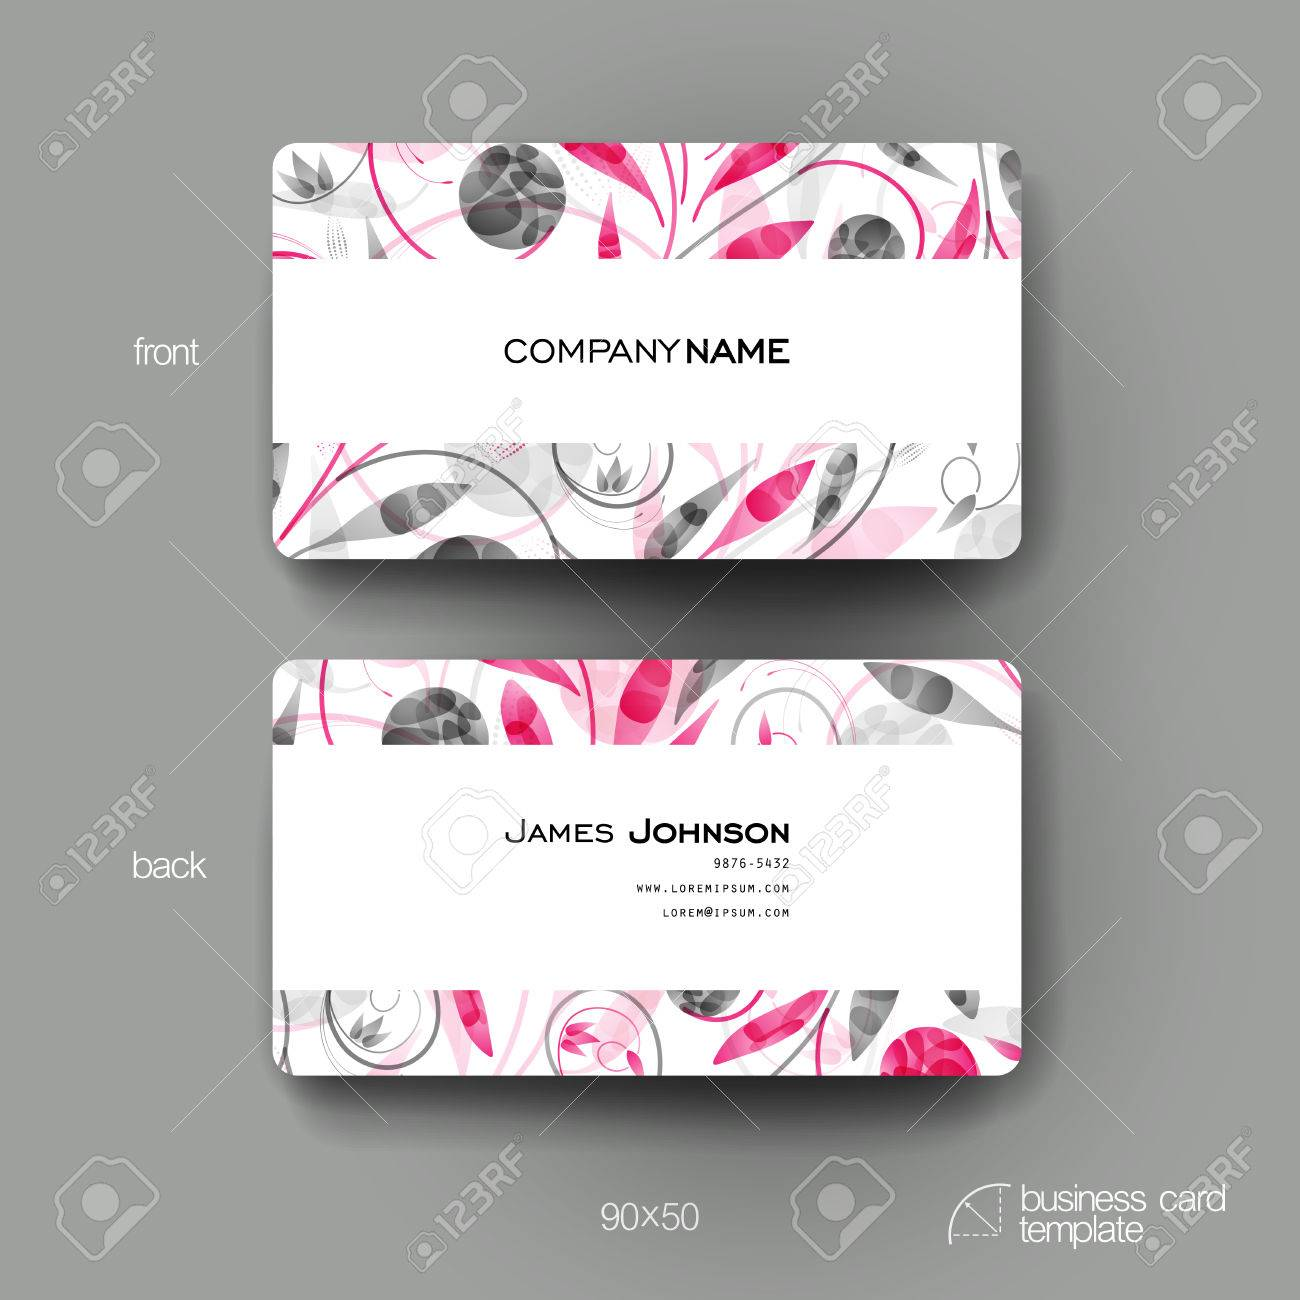 Business Card Vector Template With Floral Ornament Background ...